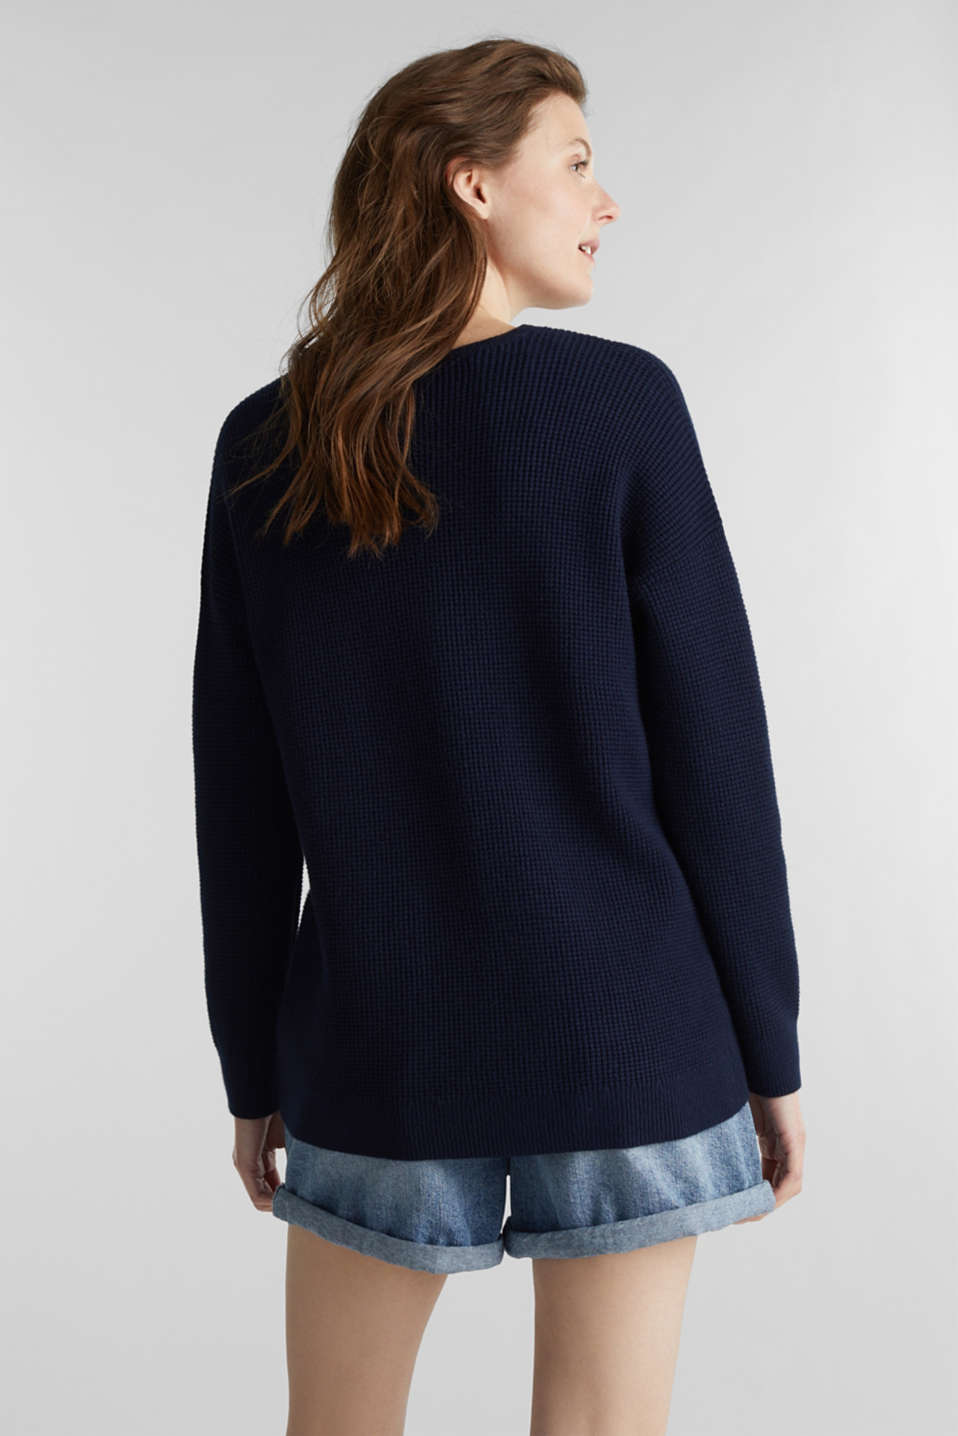 Jumper with a rice grain texture, NAVY, detail image number 2